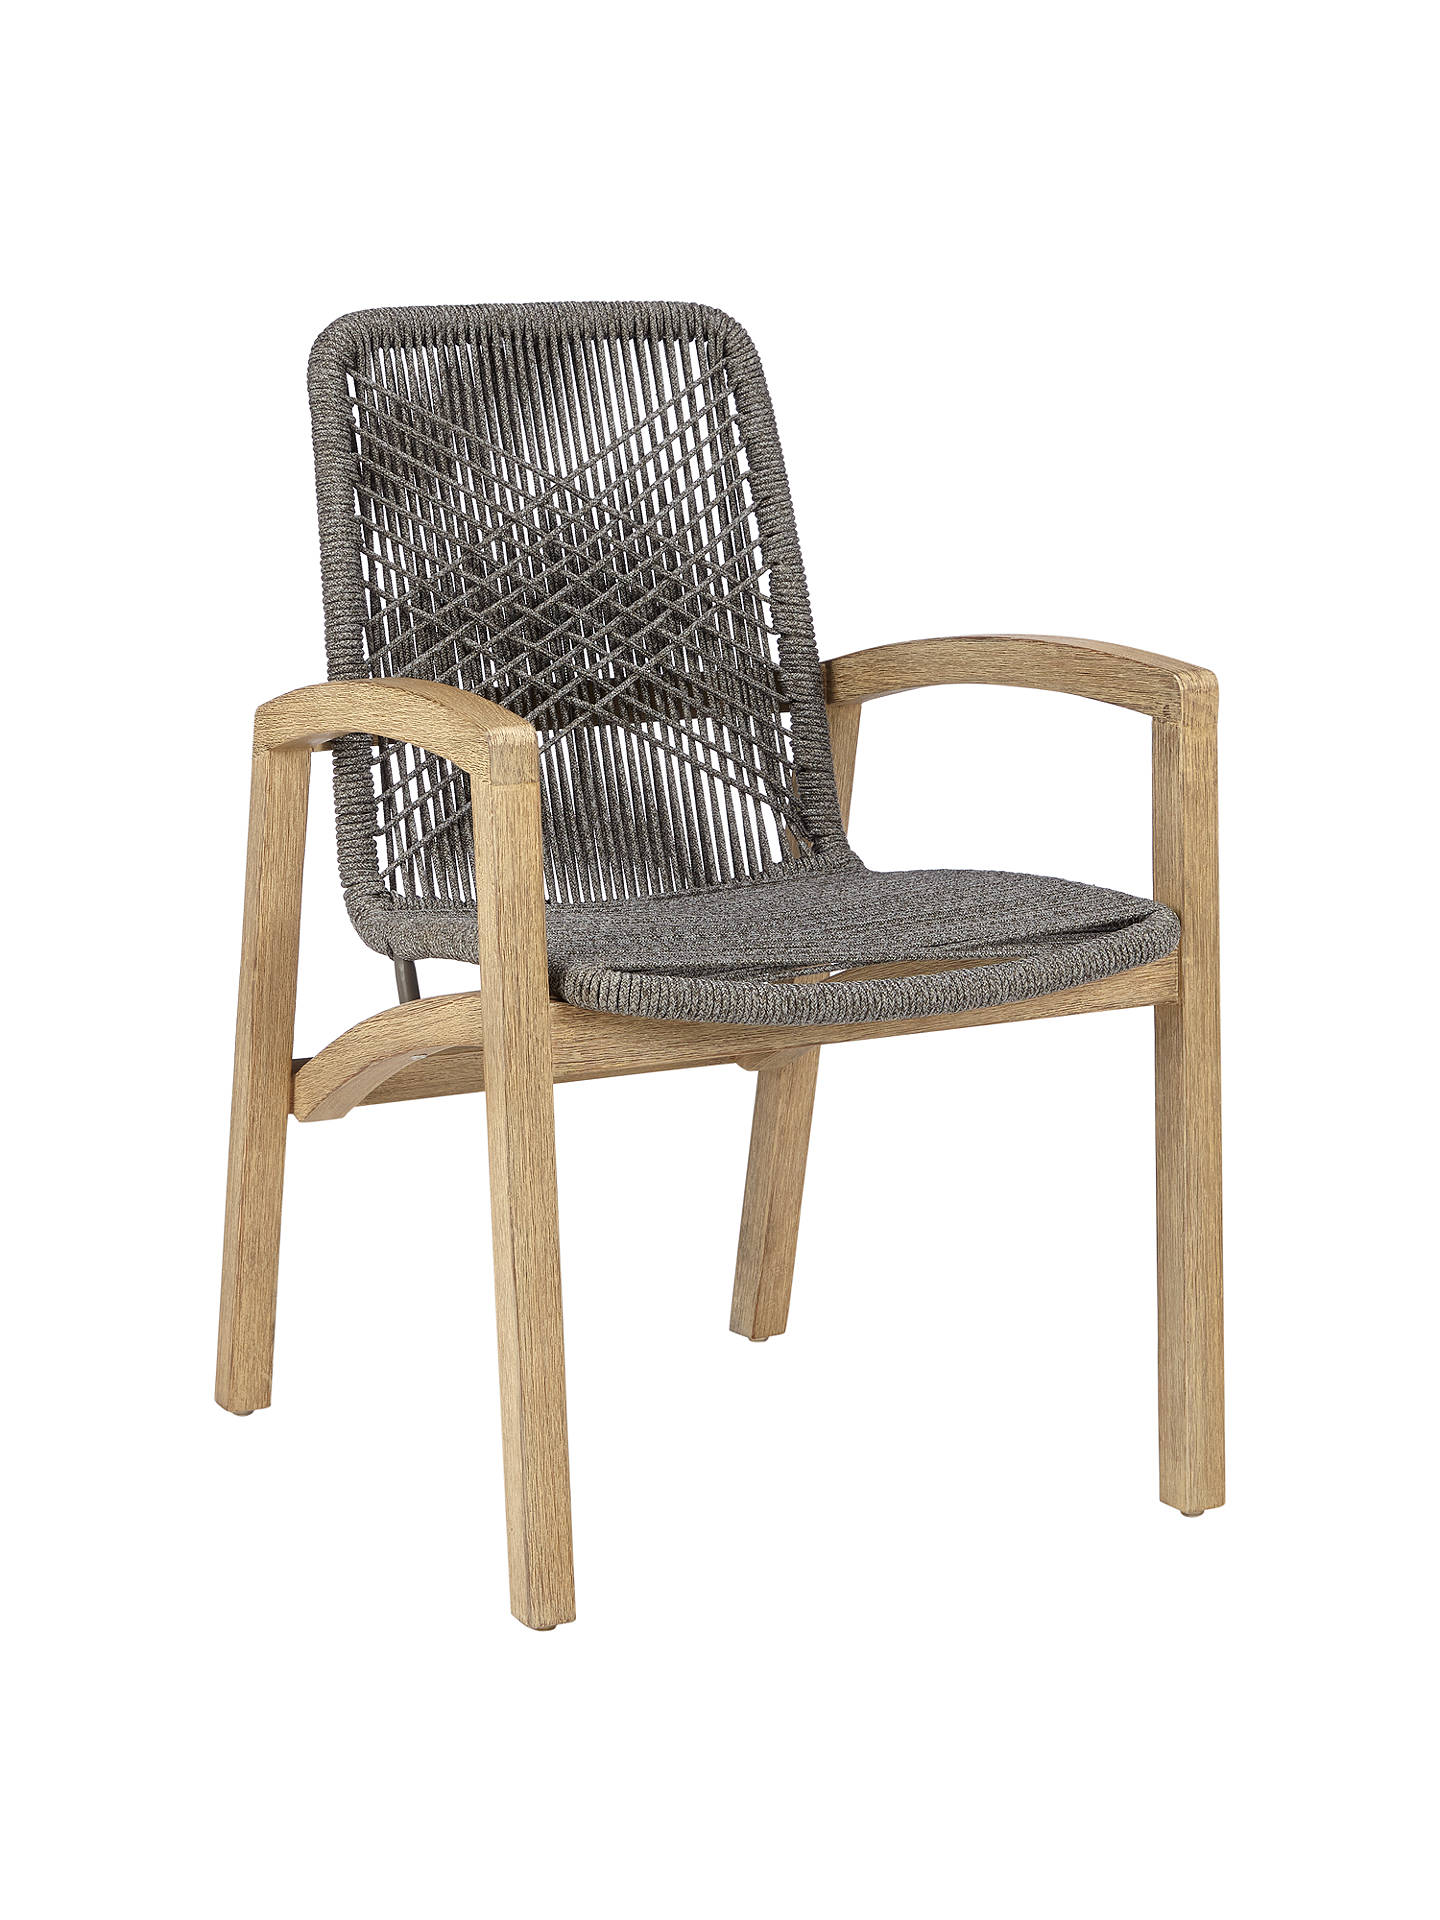 Buy john lewis partners leia outdoor dining chairs fsc certified eucalyptus